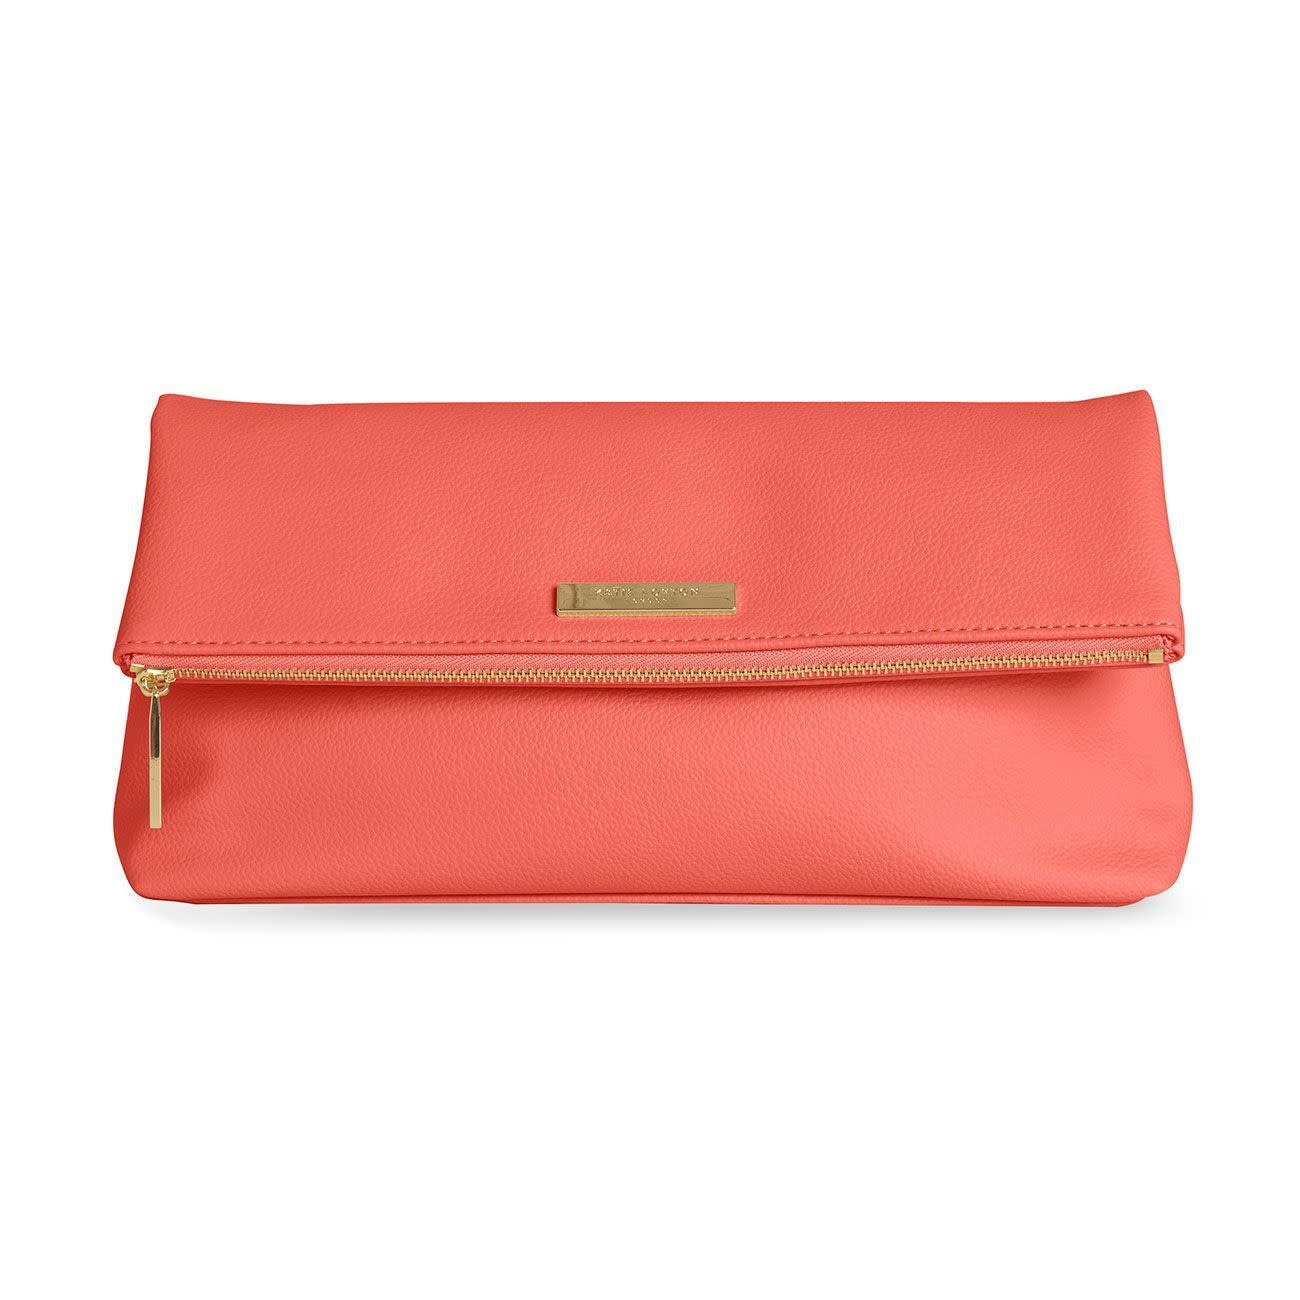 Katie Loxton Katie Loxton Alice soft pebble fold over clutch - coral 14.5 x 28 x 7 cm